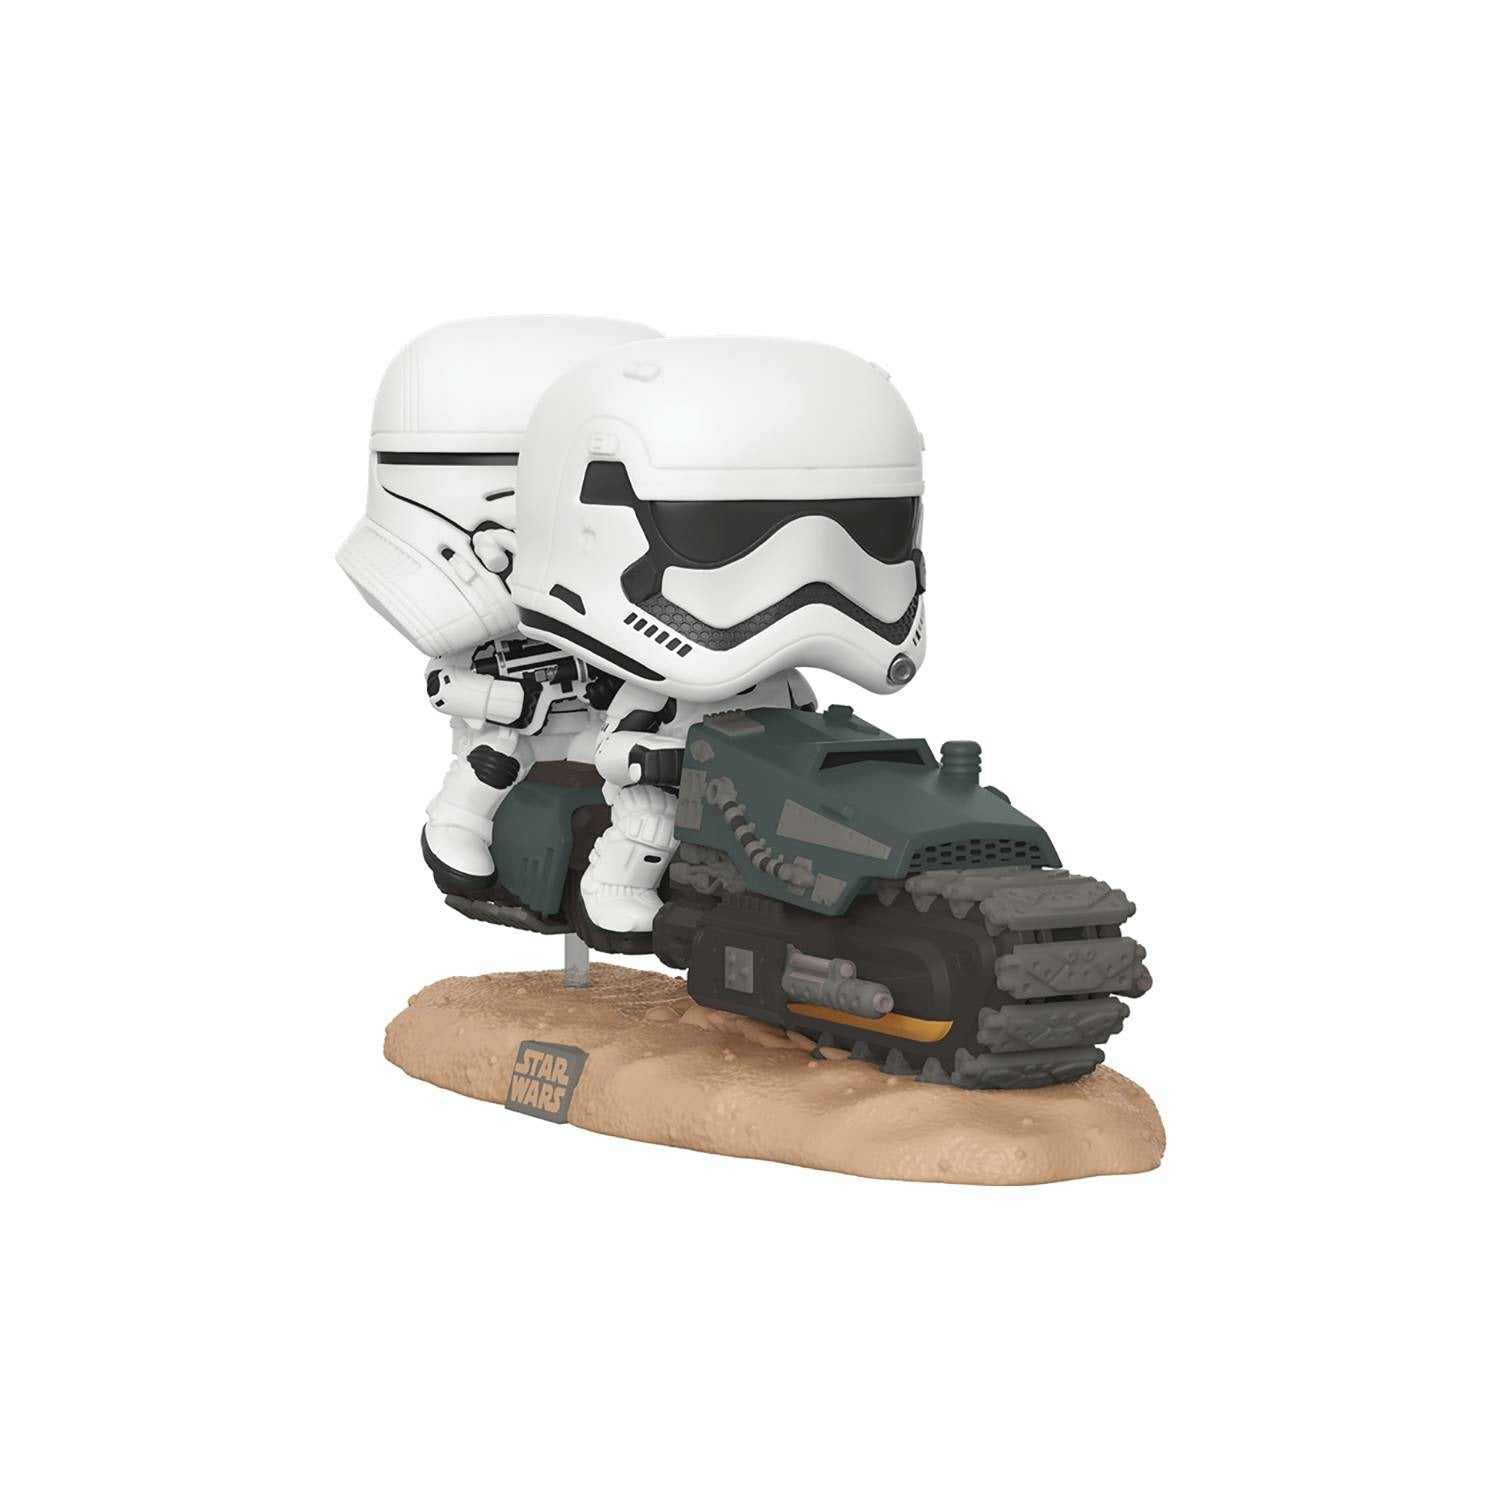 Pop! Movie Moments Star Wars E9 Treadspeeder Vinyl Figure